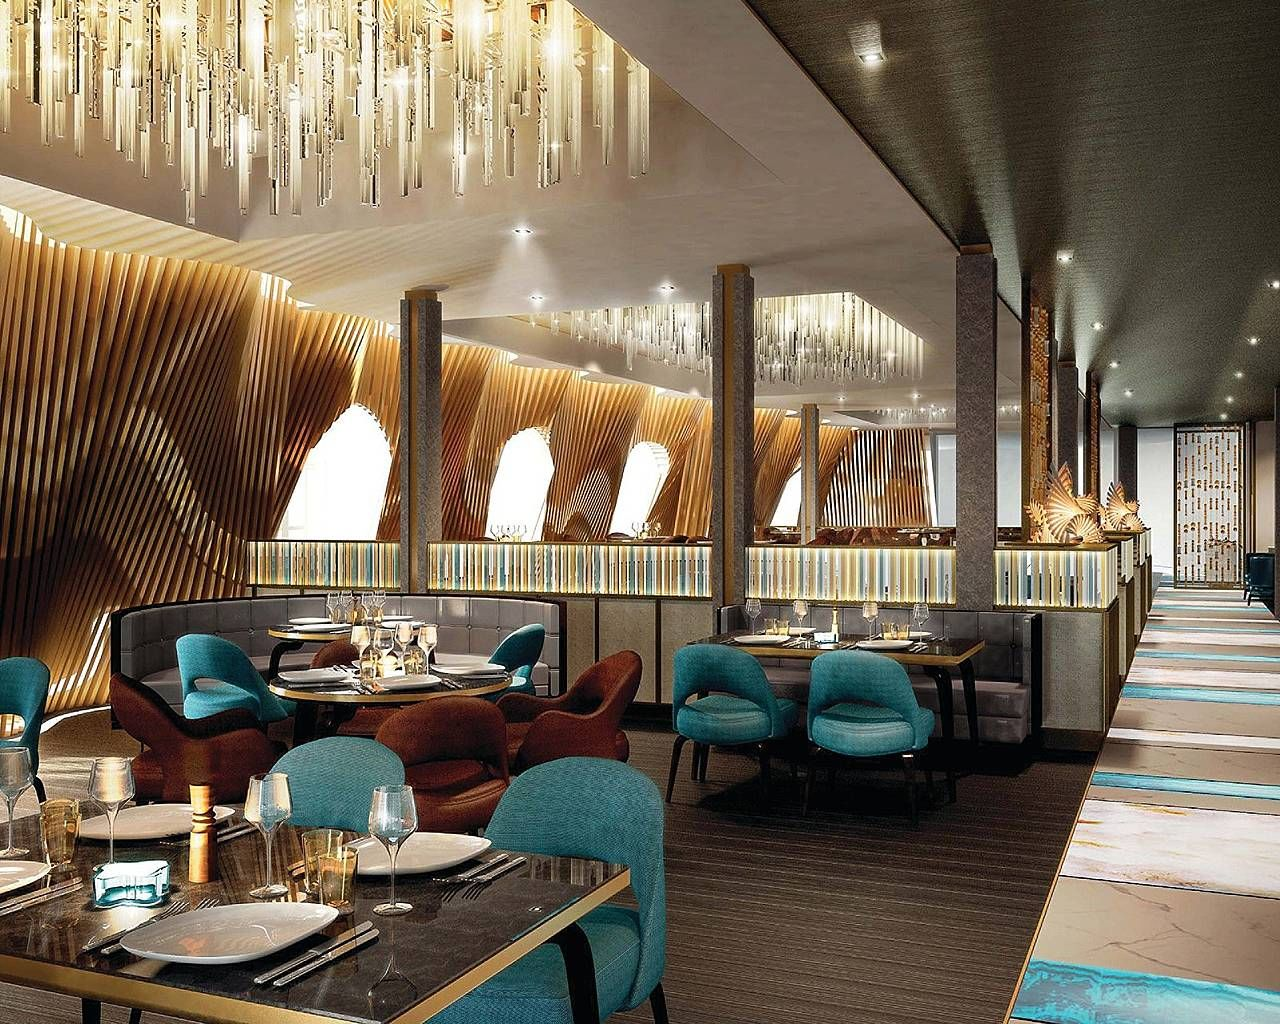 Restaurant Design Concepts With Lamp Crystal Interior Design Giesendesign Restaurant Design Concepts Restaurant Design Luxury Restaurant